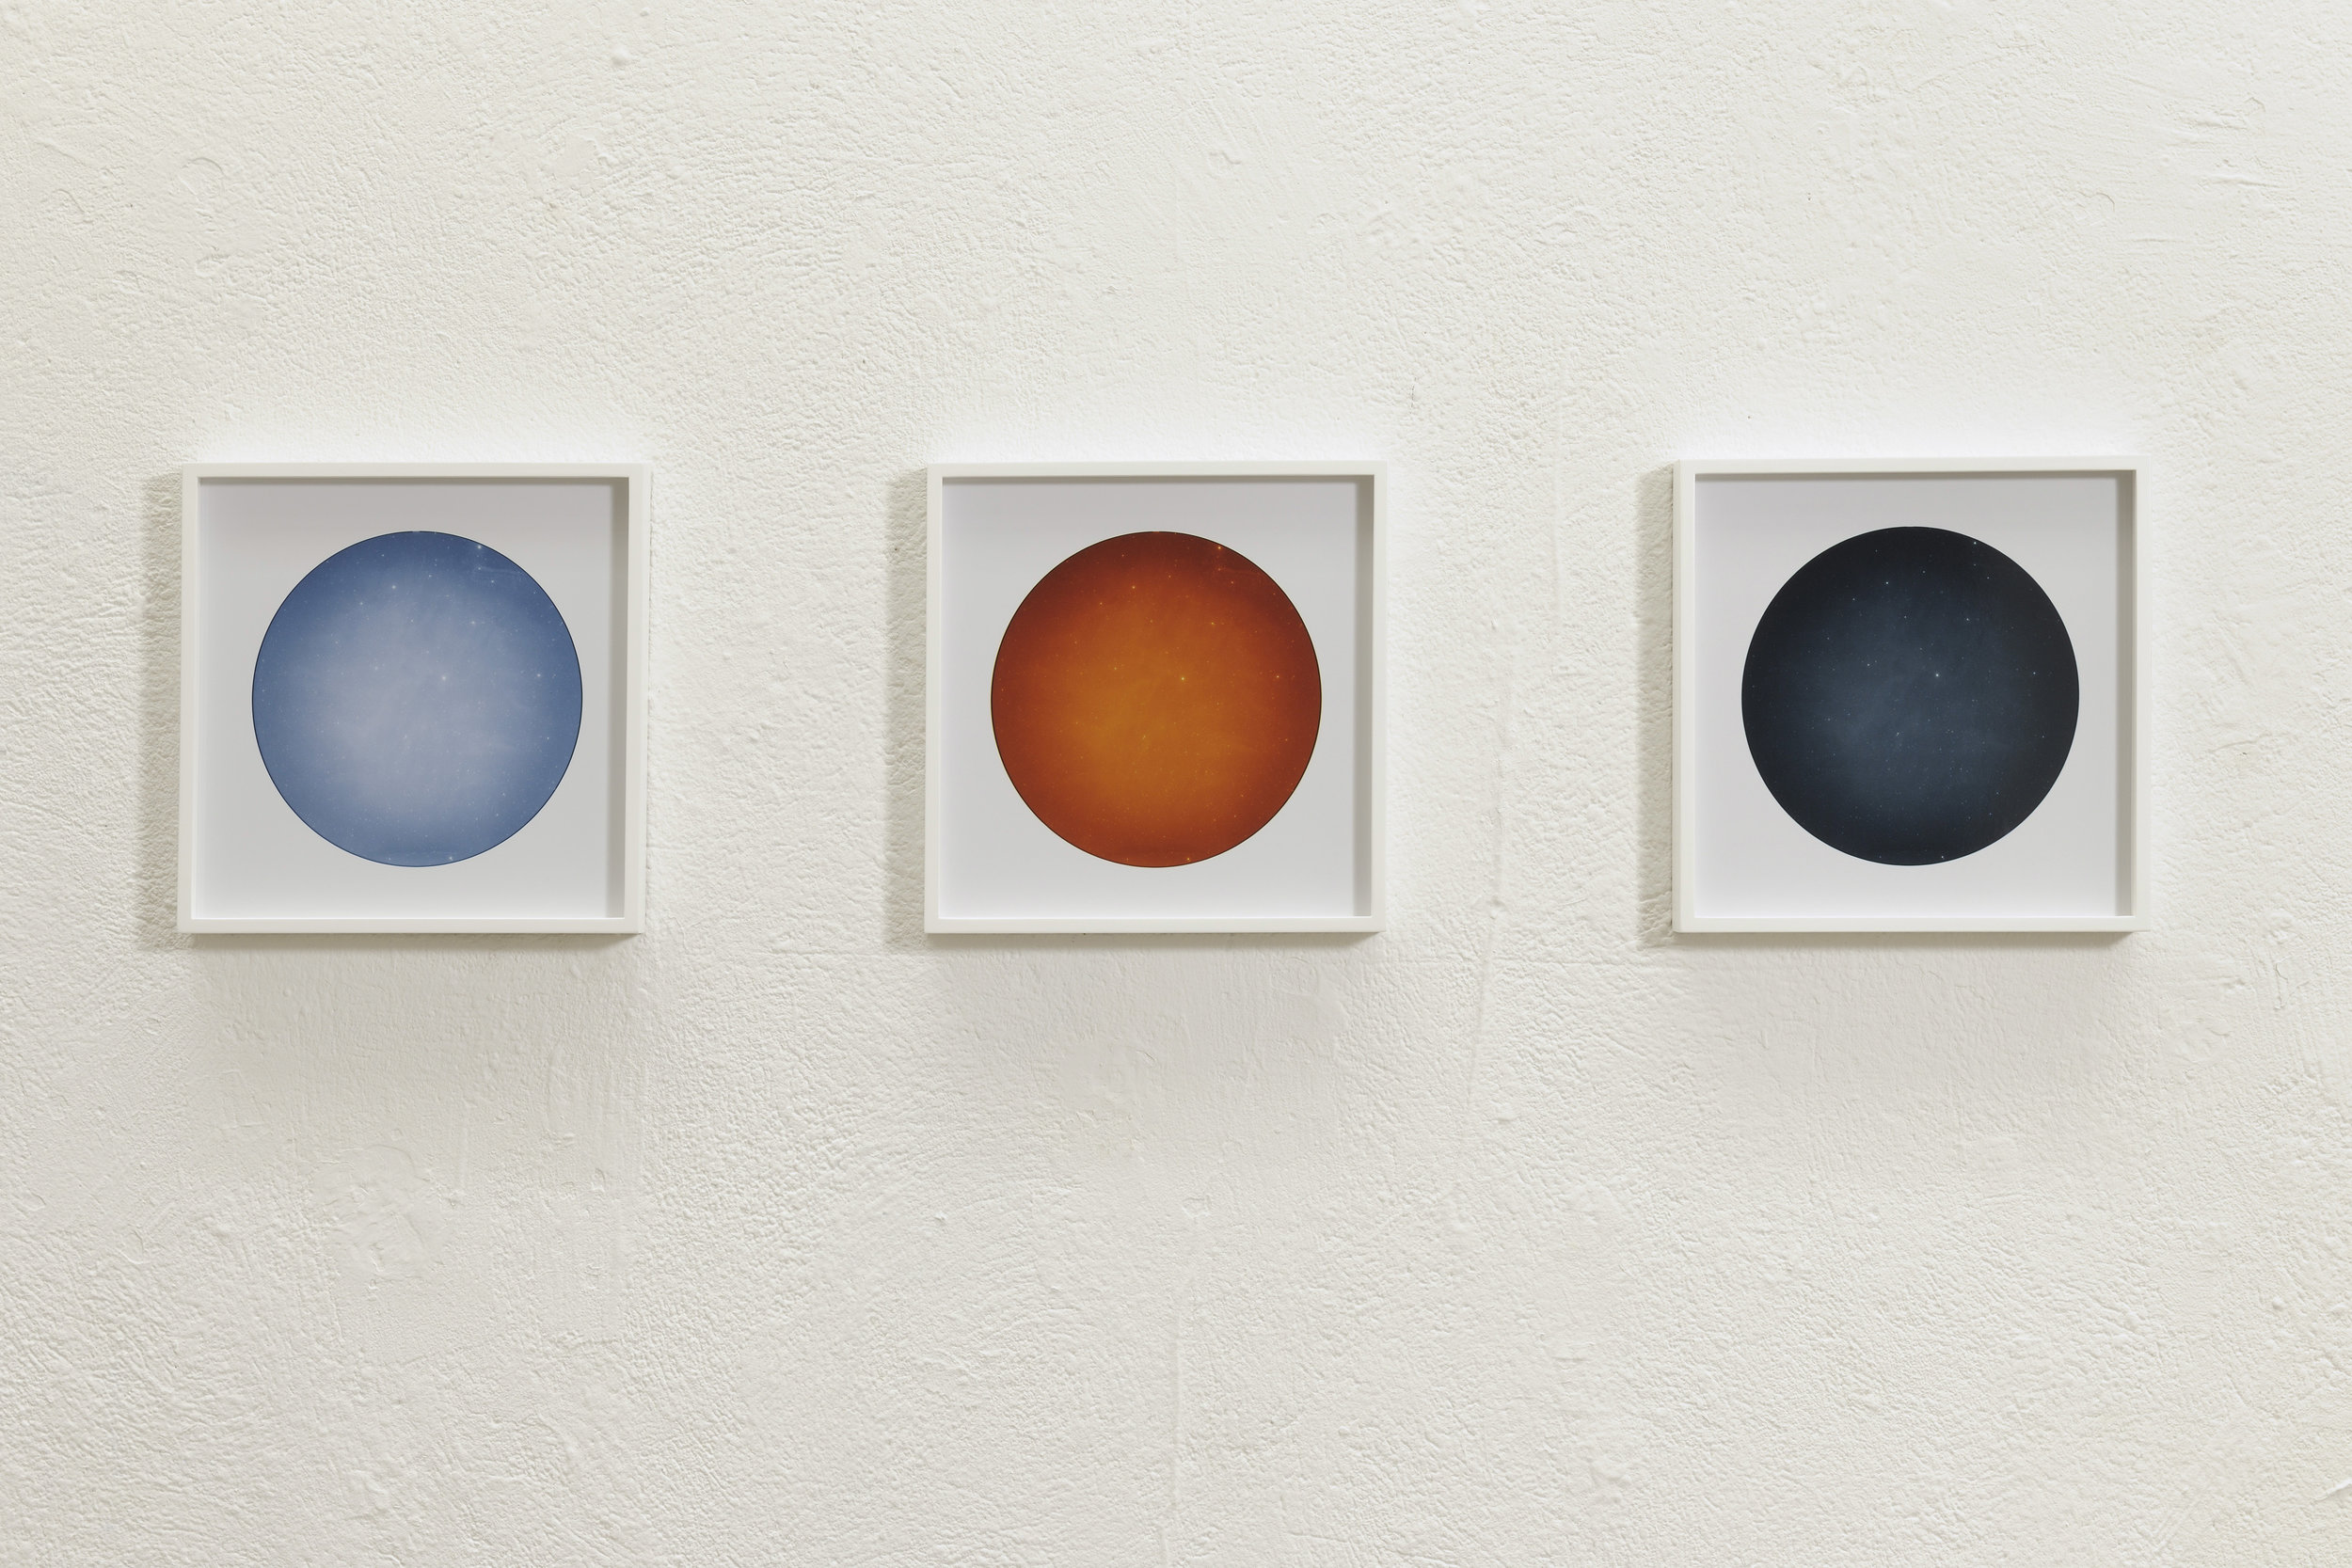 KY Observation 95 (in 10 parts) (install) (detail 1).jpg